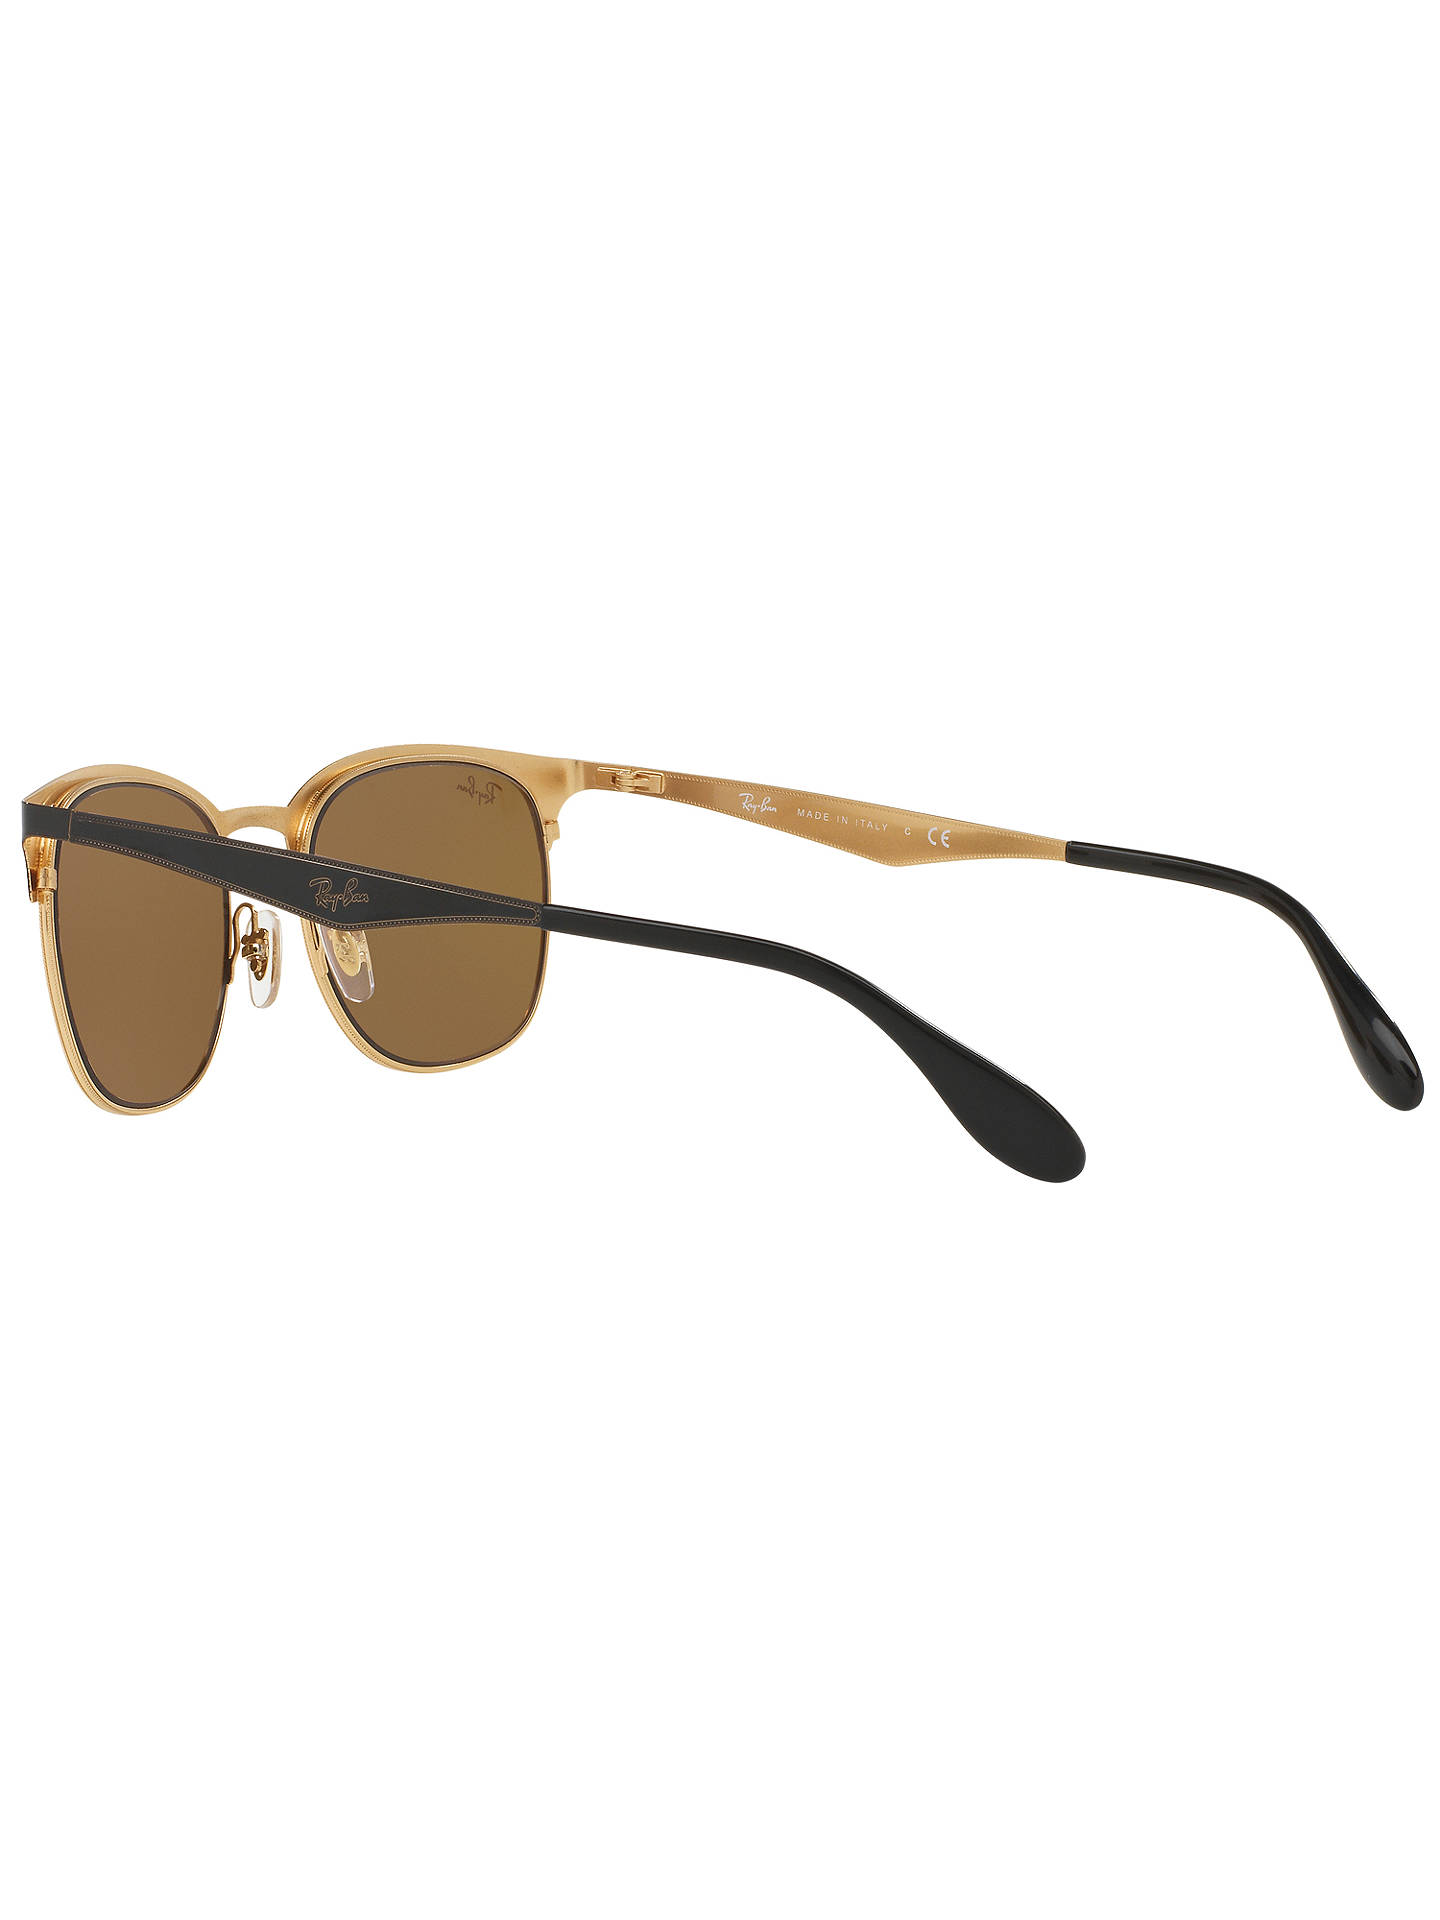 BuyRay-Ban RB3538 Half Frame Square Sunglasses, Black Online at johnlewis.com